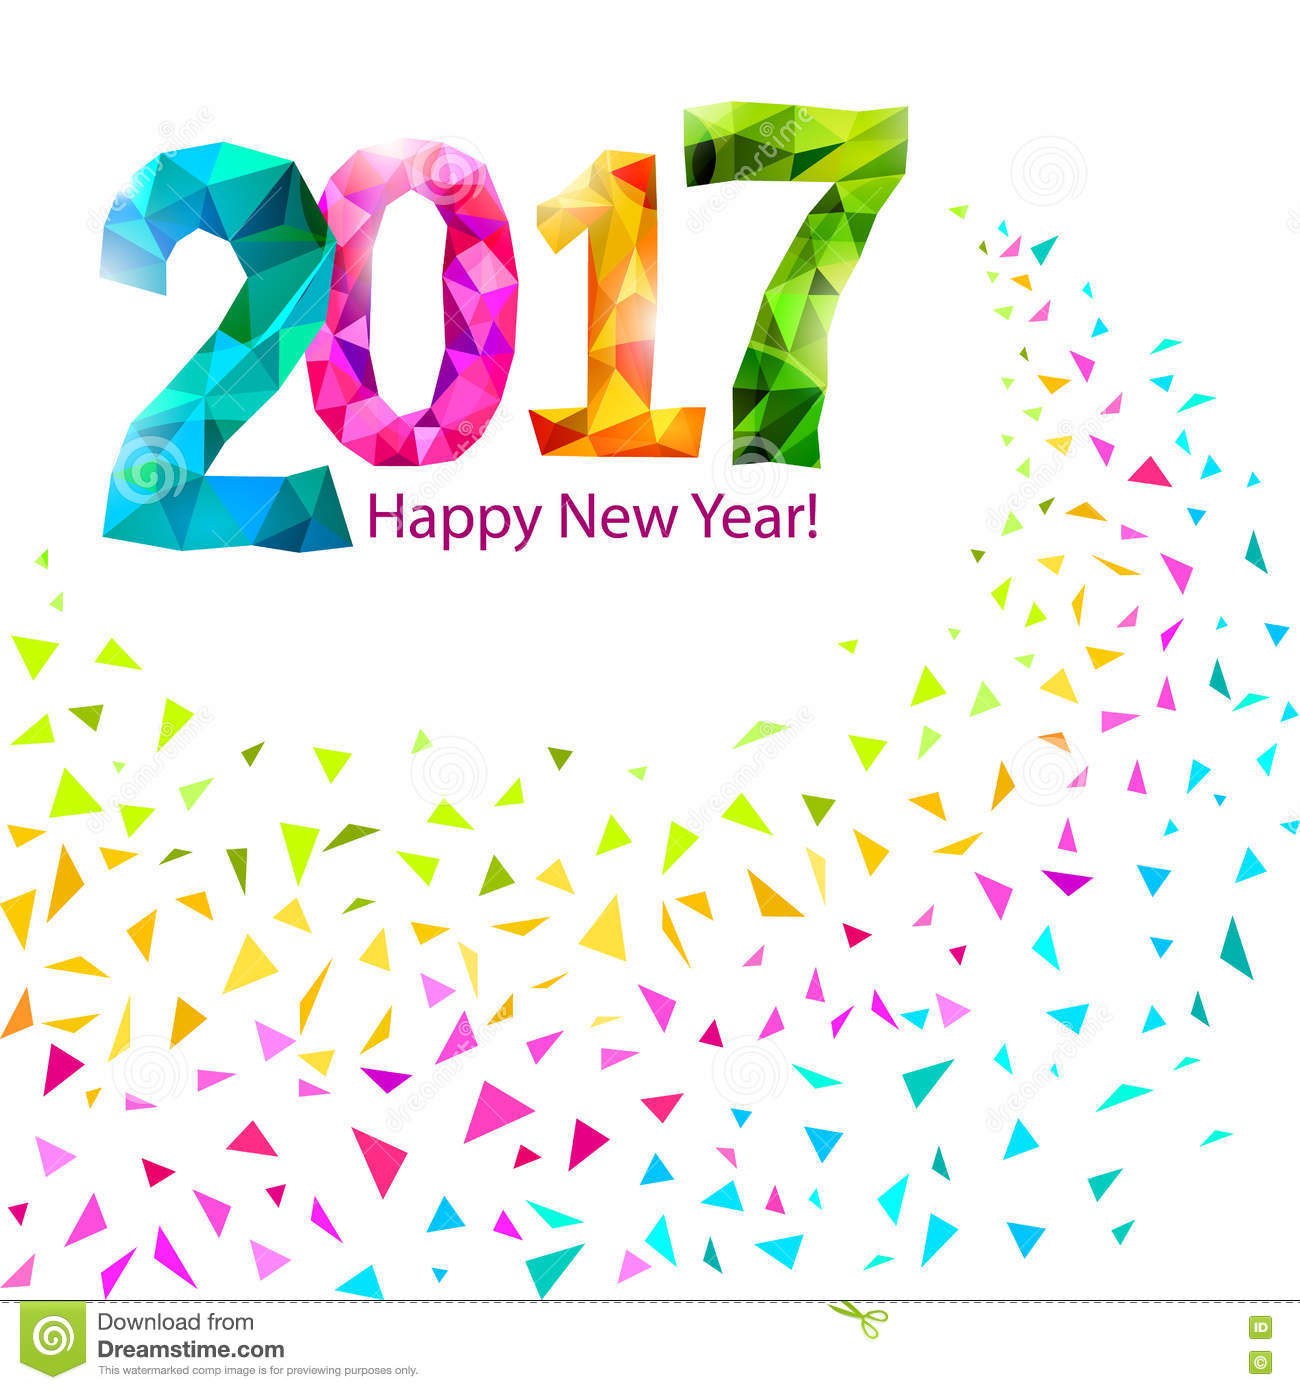 happy new year 2017 greeting card with colorful triangle shape multicolor confetti vector